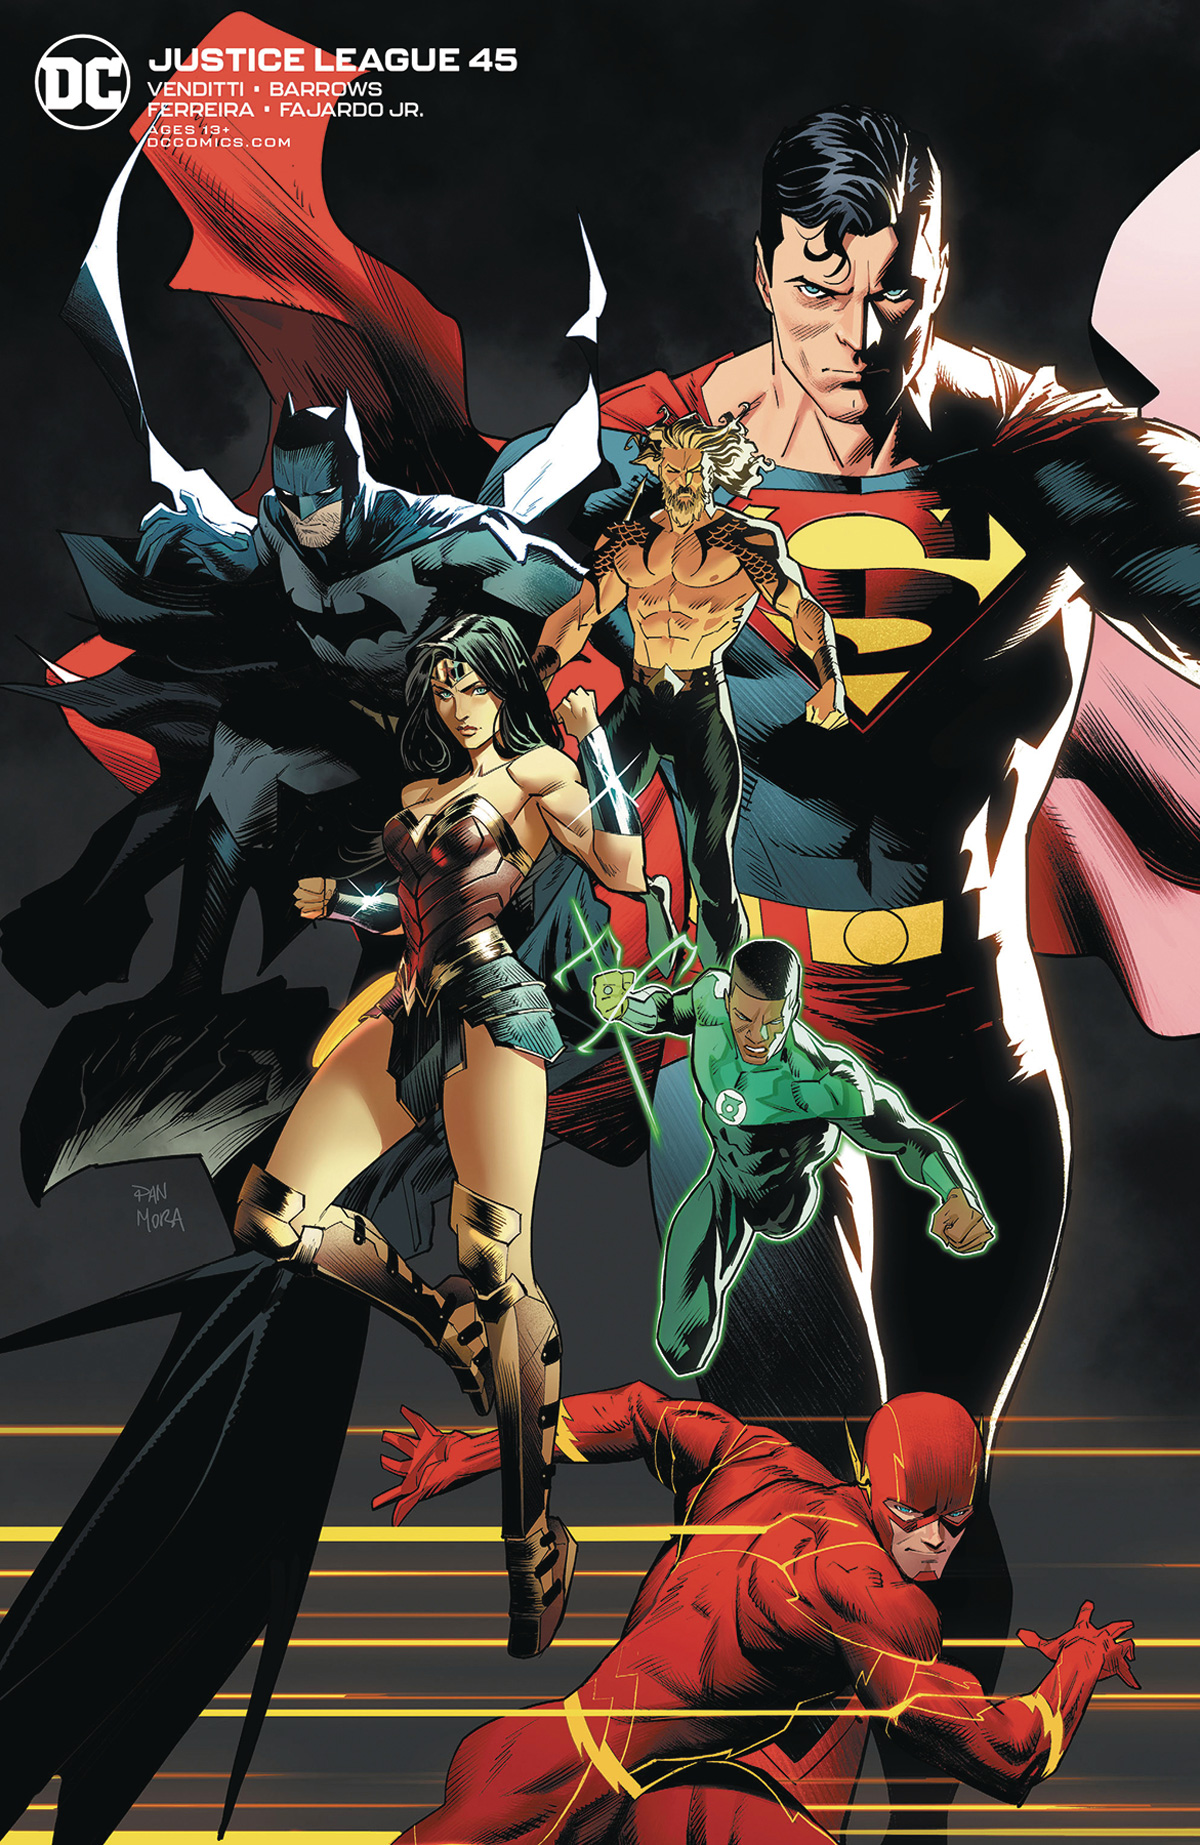 Justice League Vol 4 #45 Cover B Variant Dan Mora Cover